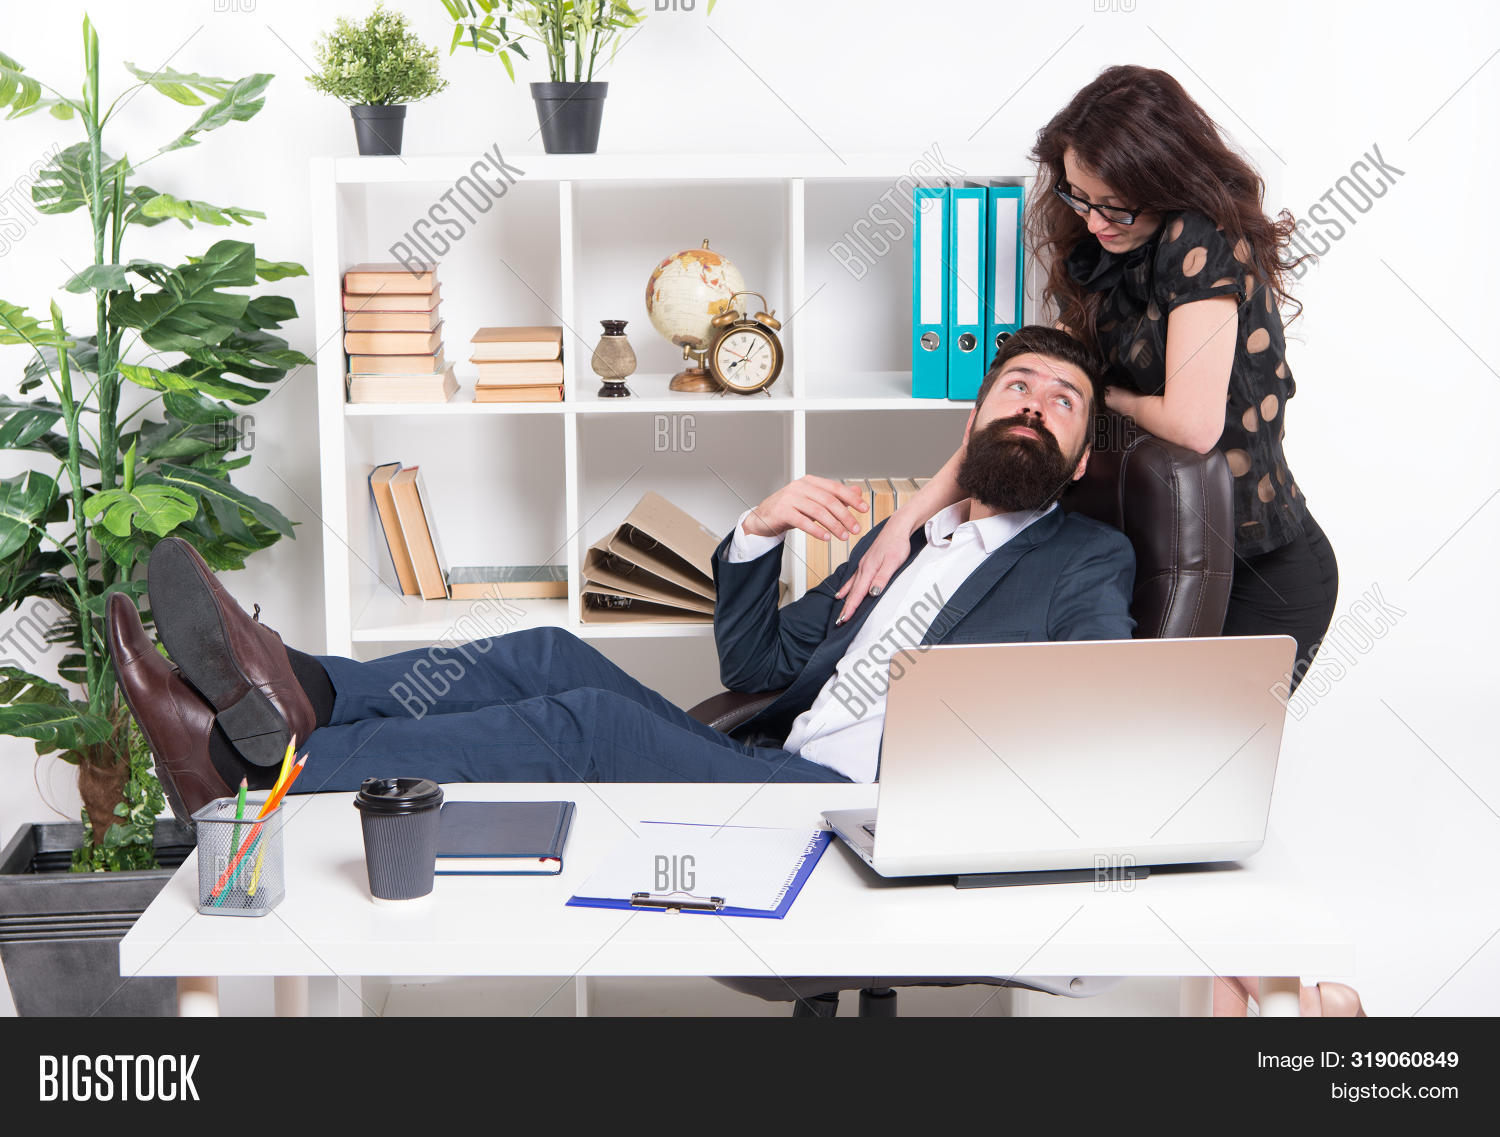 Its A Workplace Affair. Business Professionals Dating At Workplace. Workplace Romance Of Bearded Man